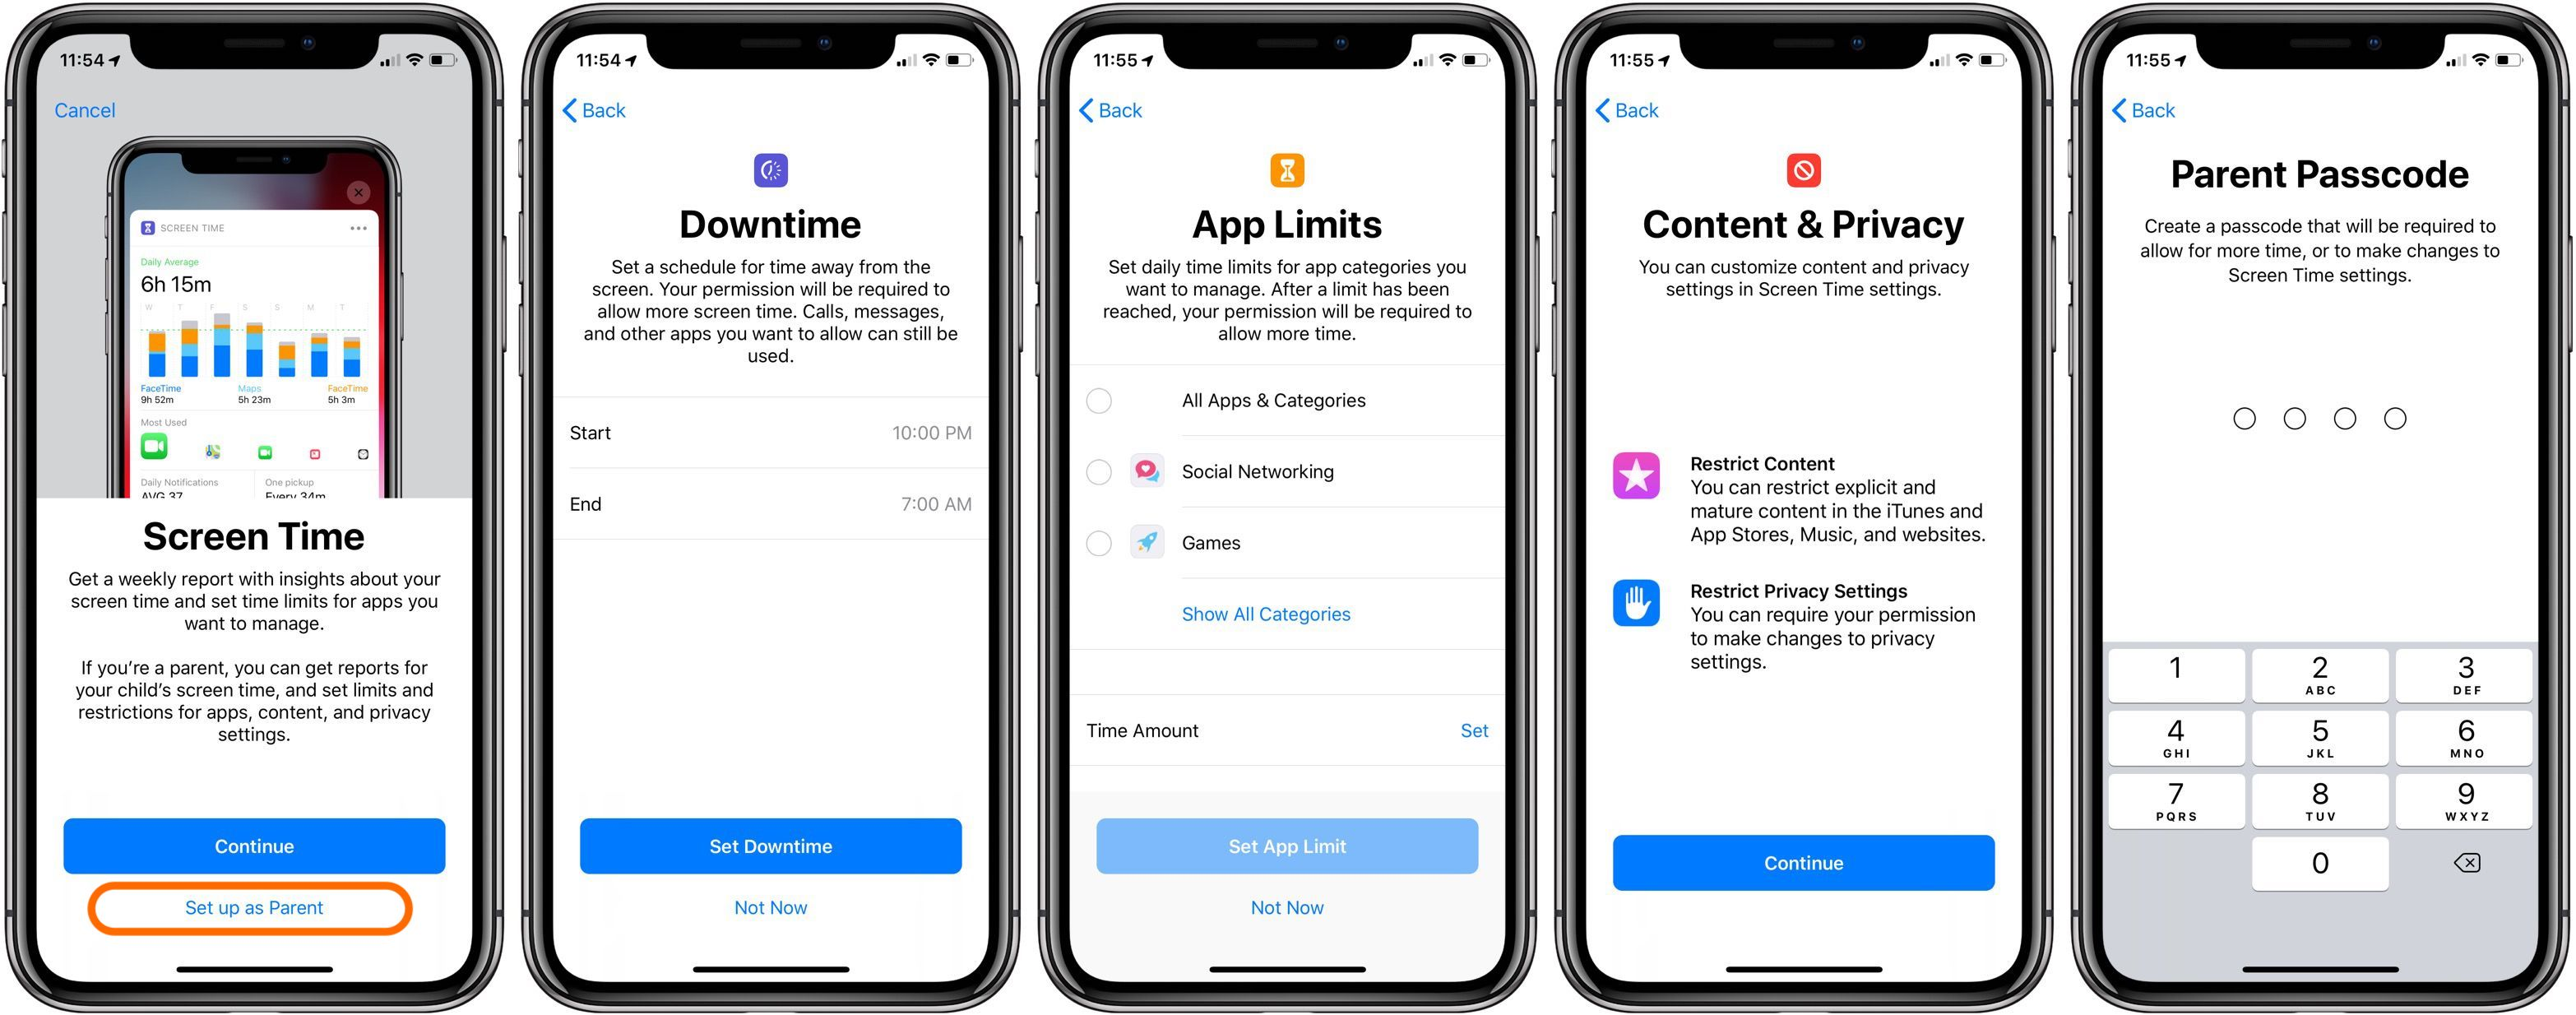 iOS 12: How to access parental controls and restrictions on iPhone